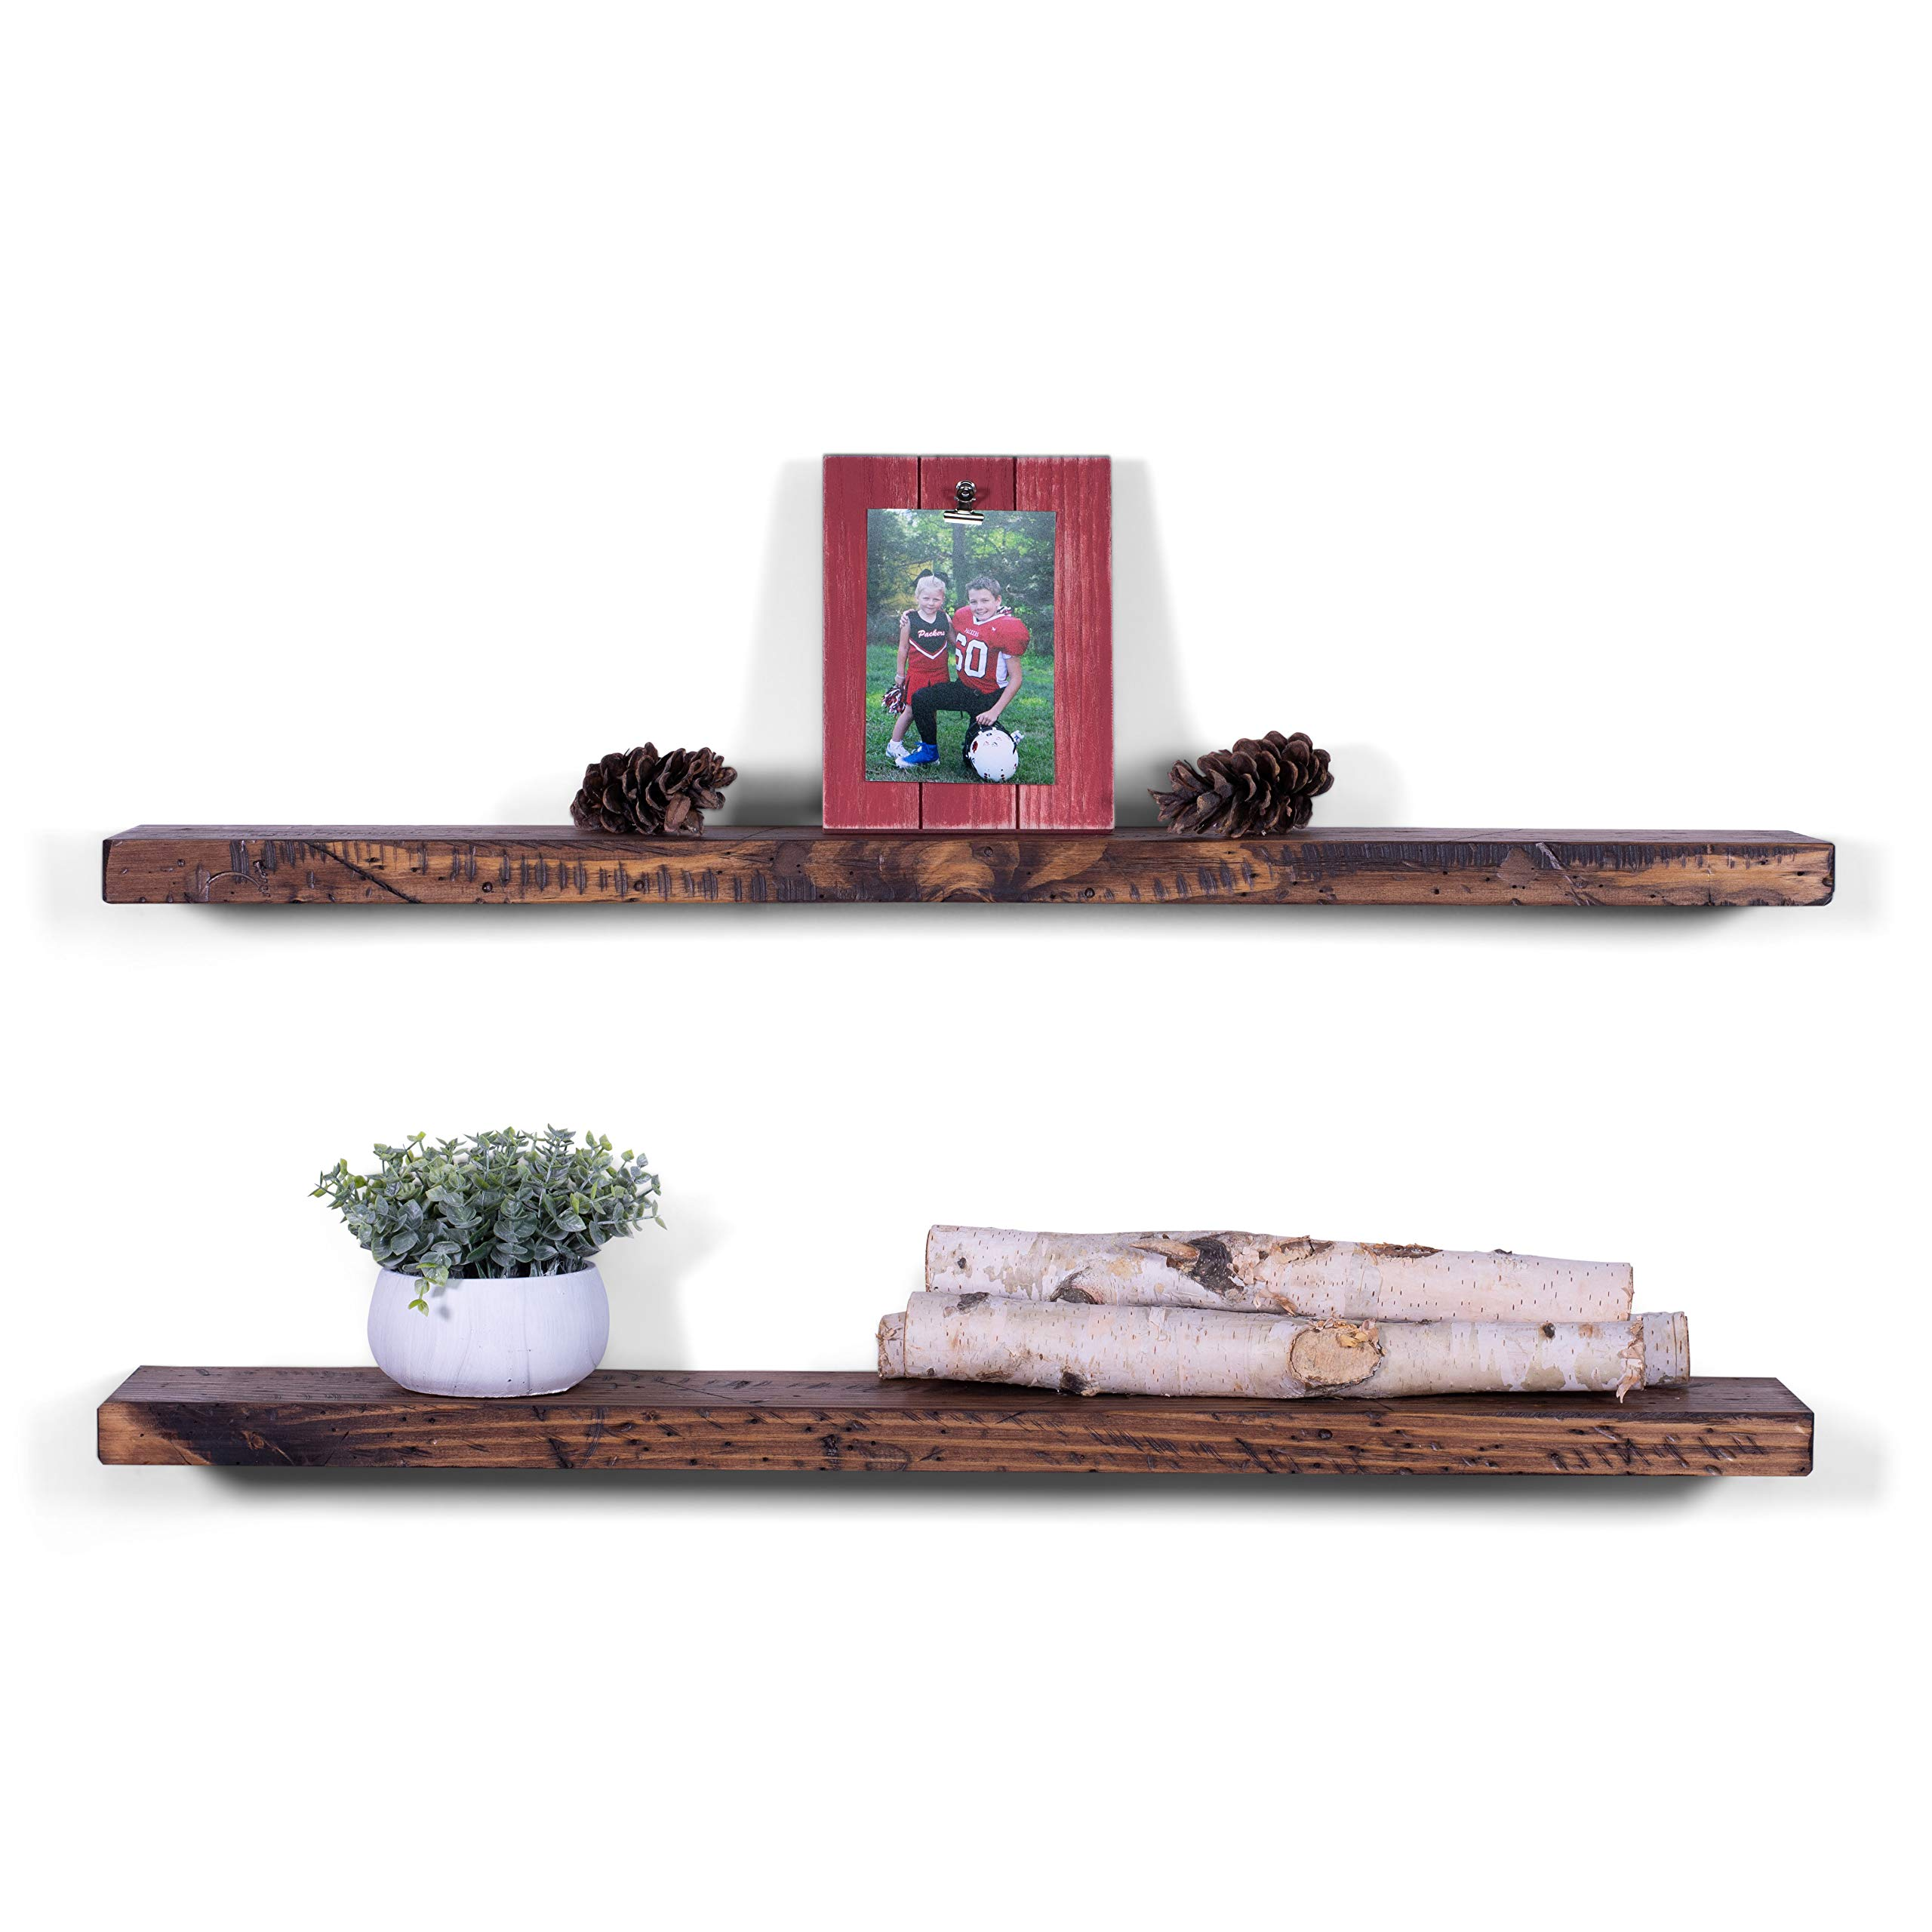 best rated floating shelves helpful customer reviews the shelf company dakoda love deep rugged distressed usa handmade clear coat finish wrought iron wall ledges kitchen cabinets